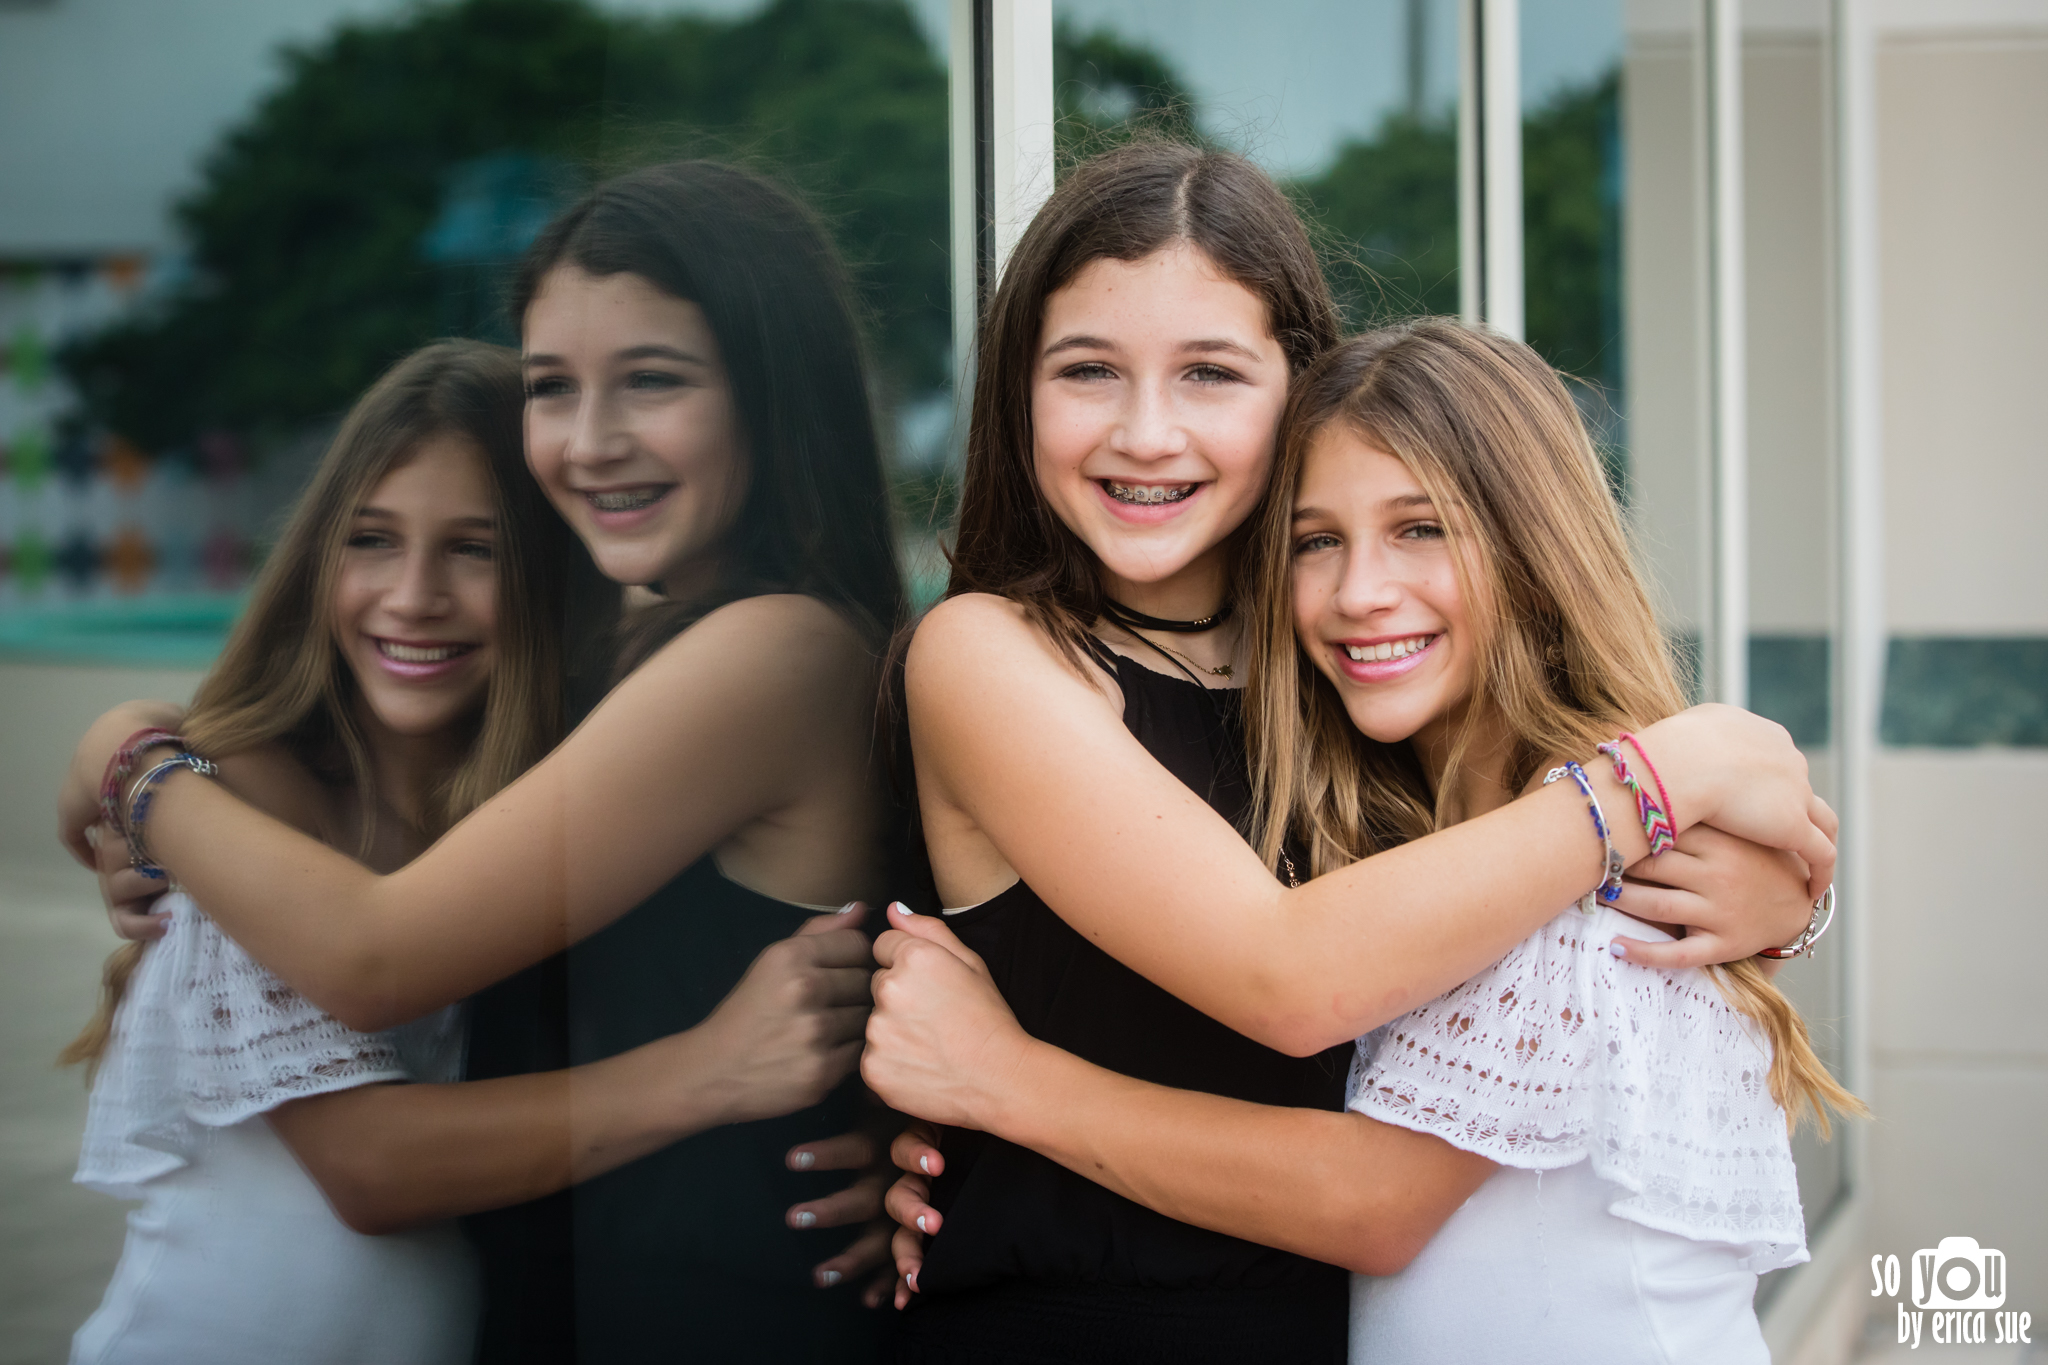 bat-mitzvah-pre-shoot-downtown-ft-lauderdale-teen-so-you-by-erica-sue-4184.jpg